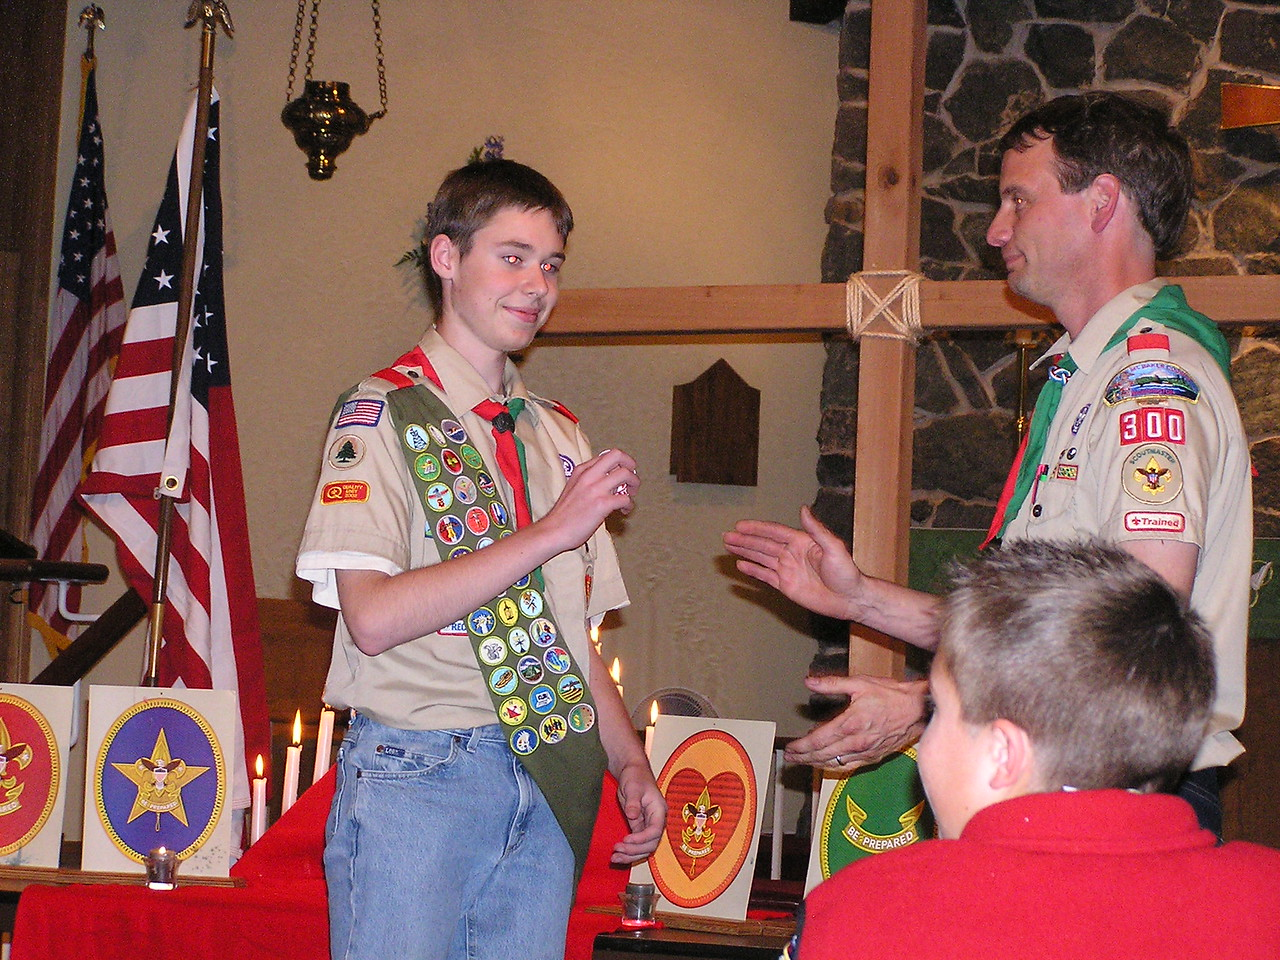 03-09-08 Kevin, Scouts 019